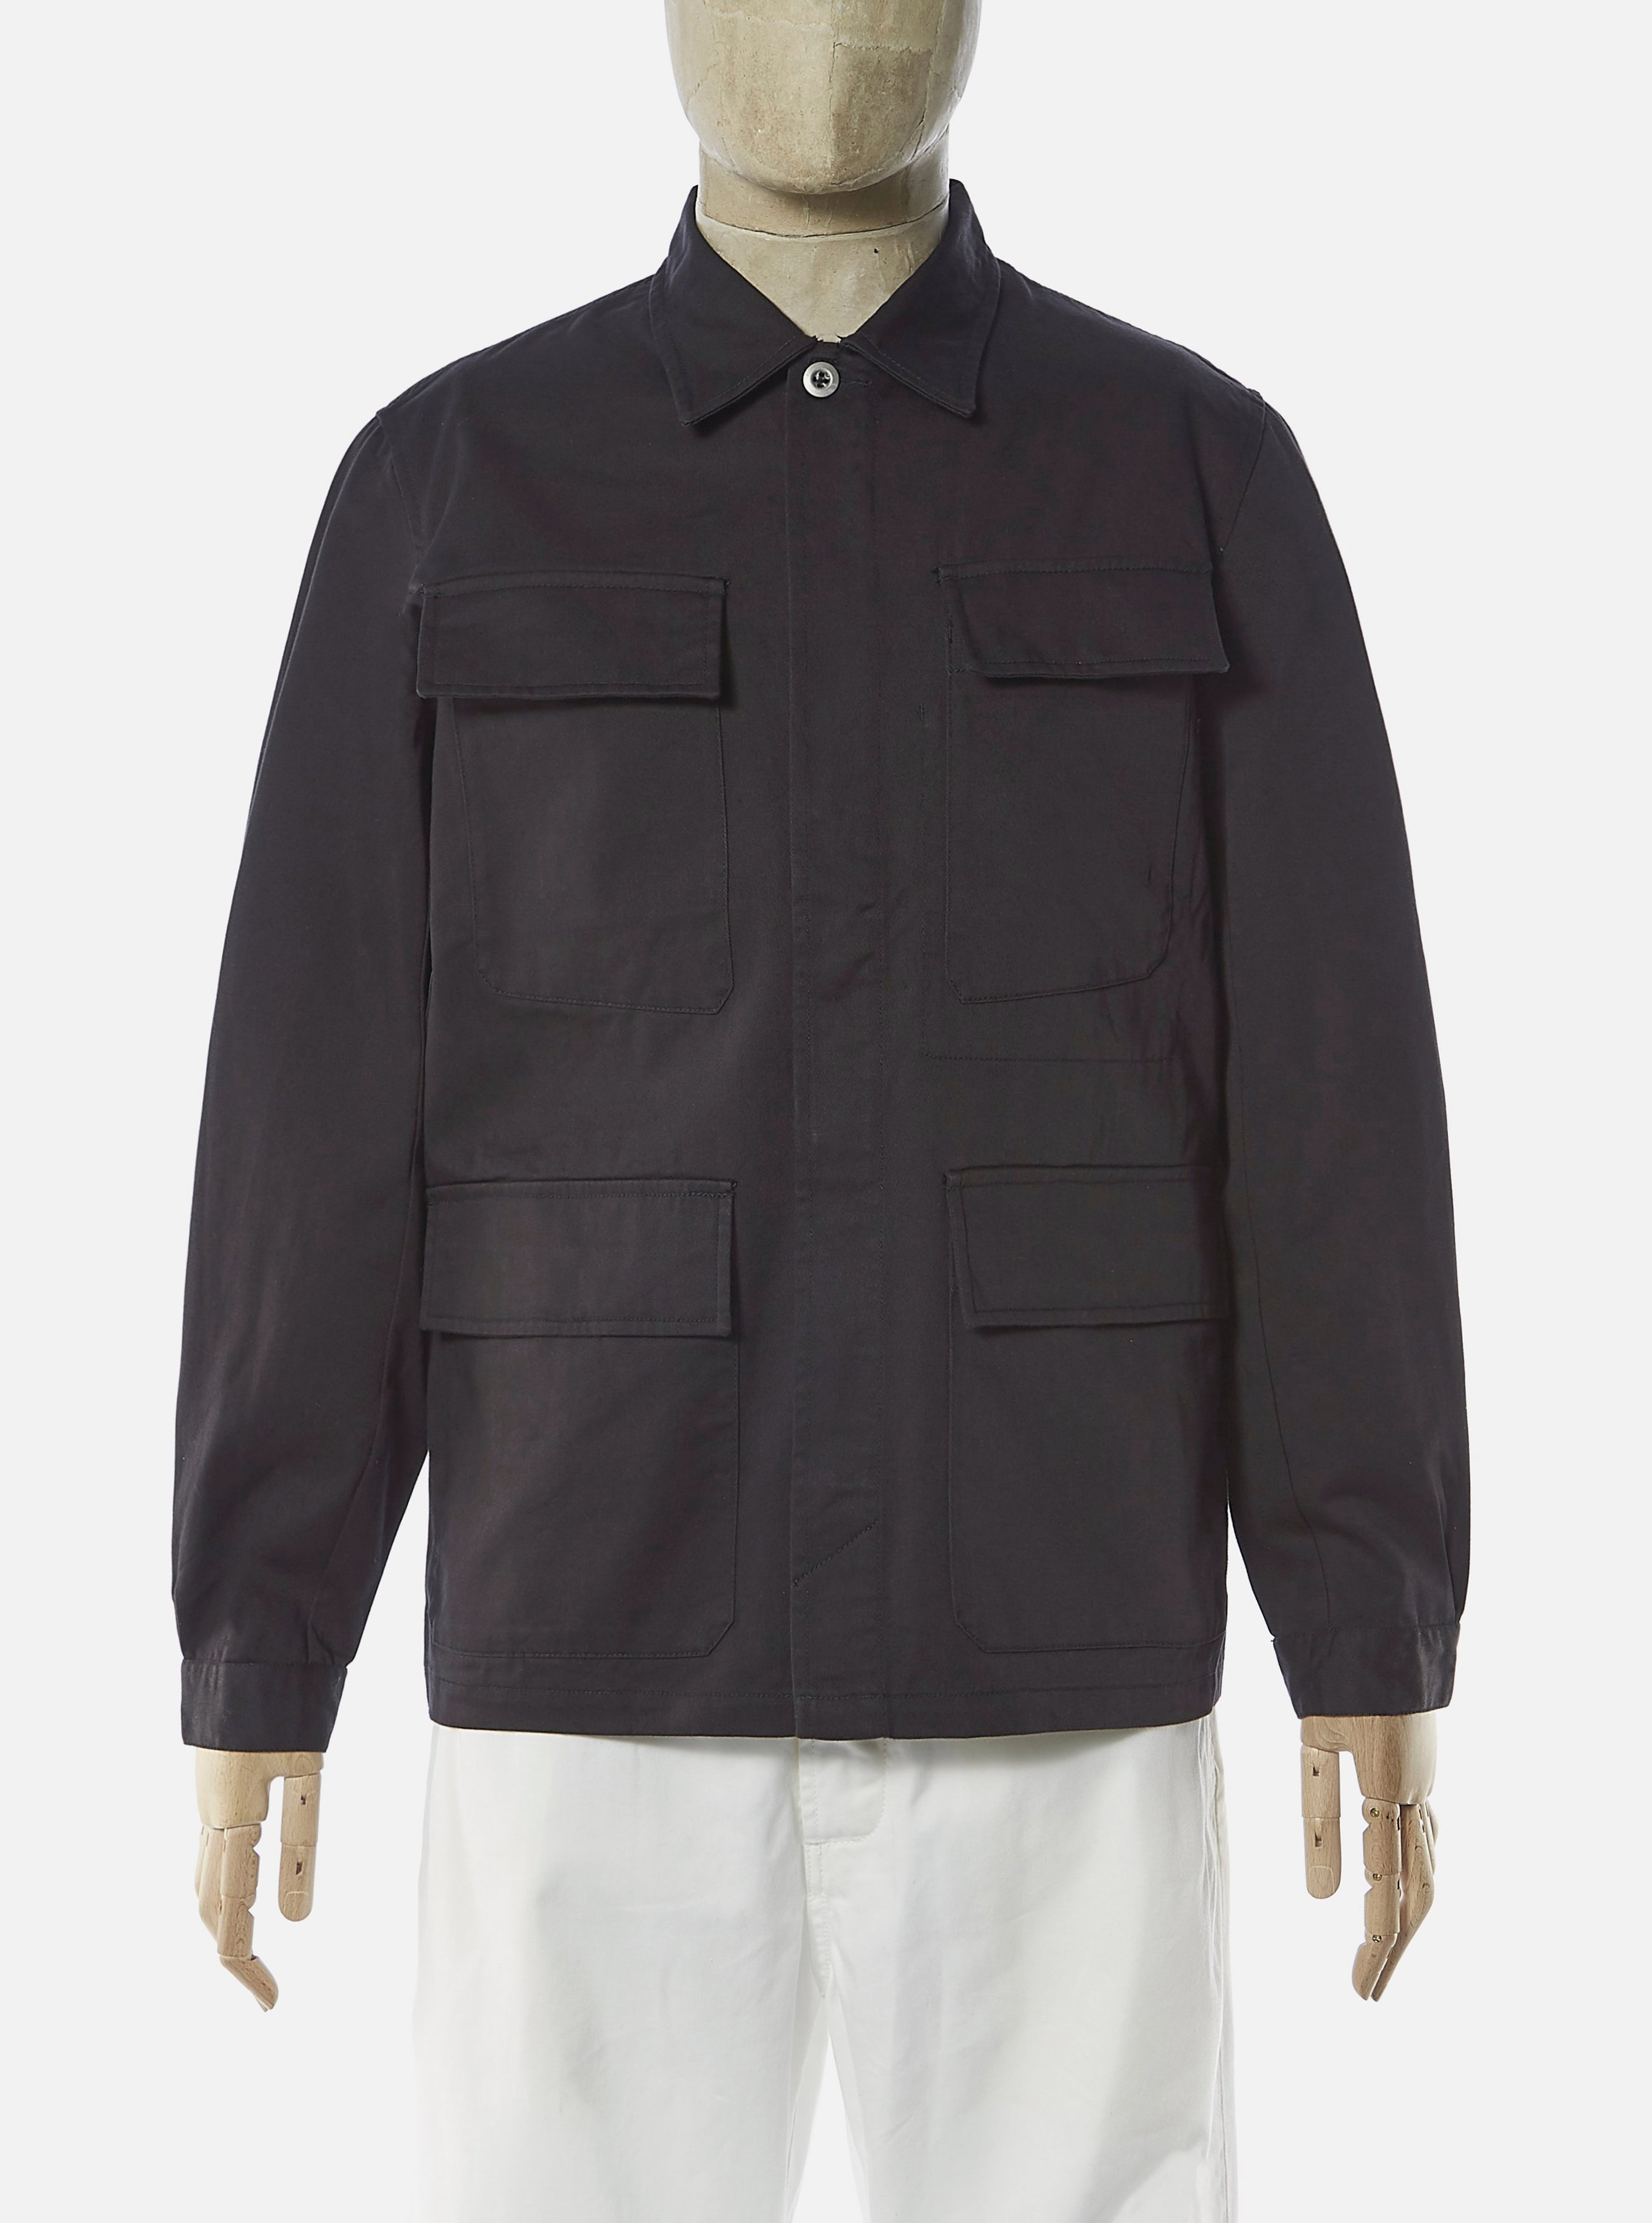 Universal Works MW Fatigue Jacket in Black Twill